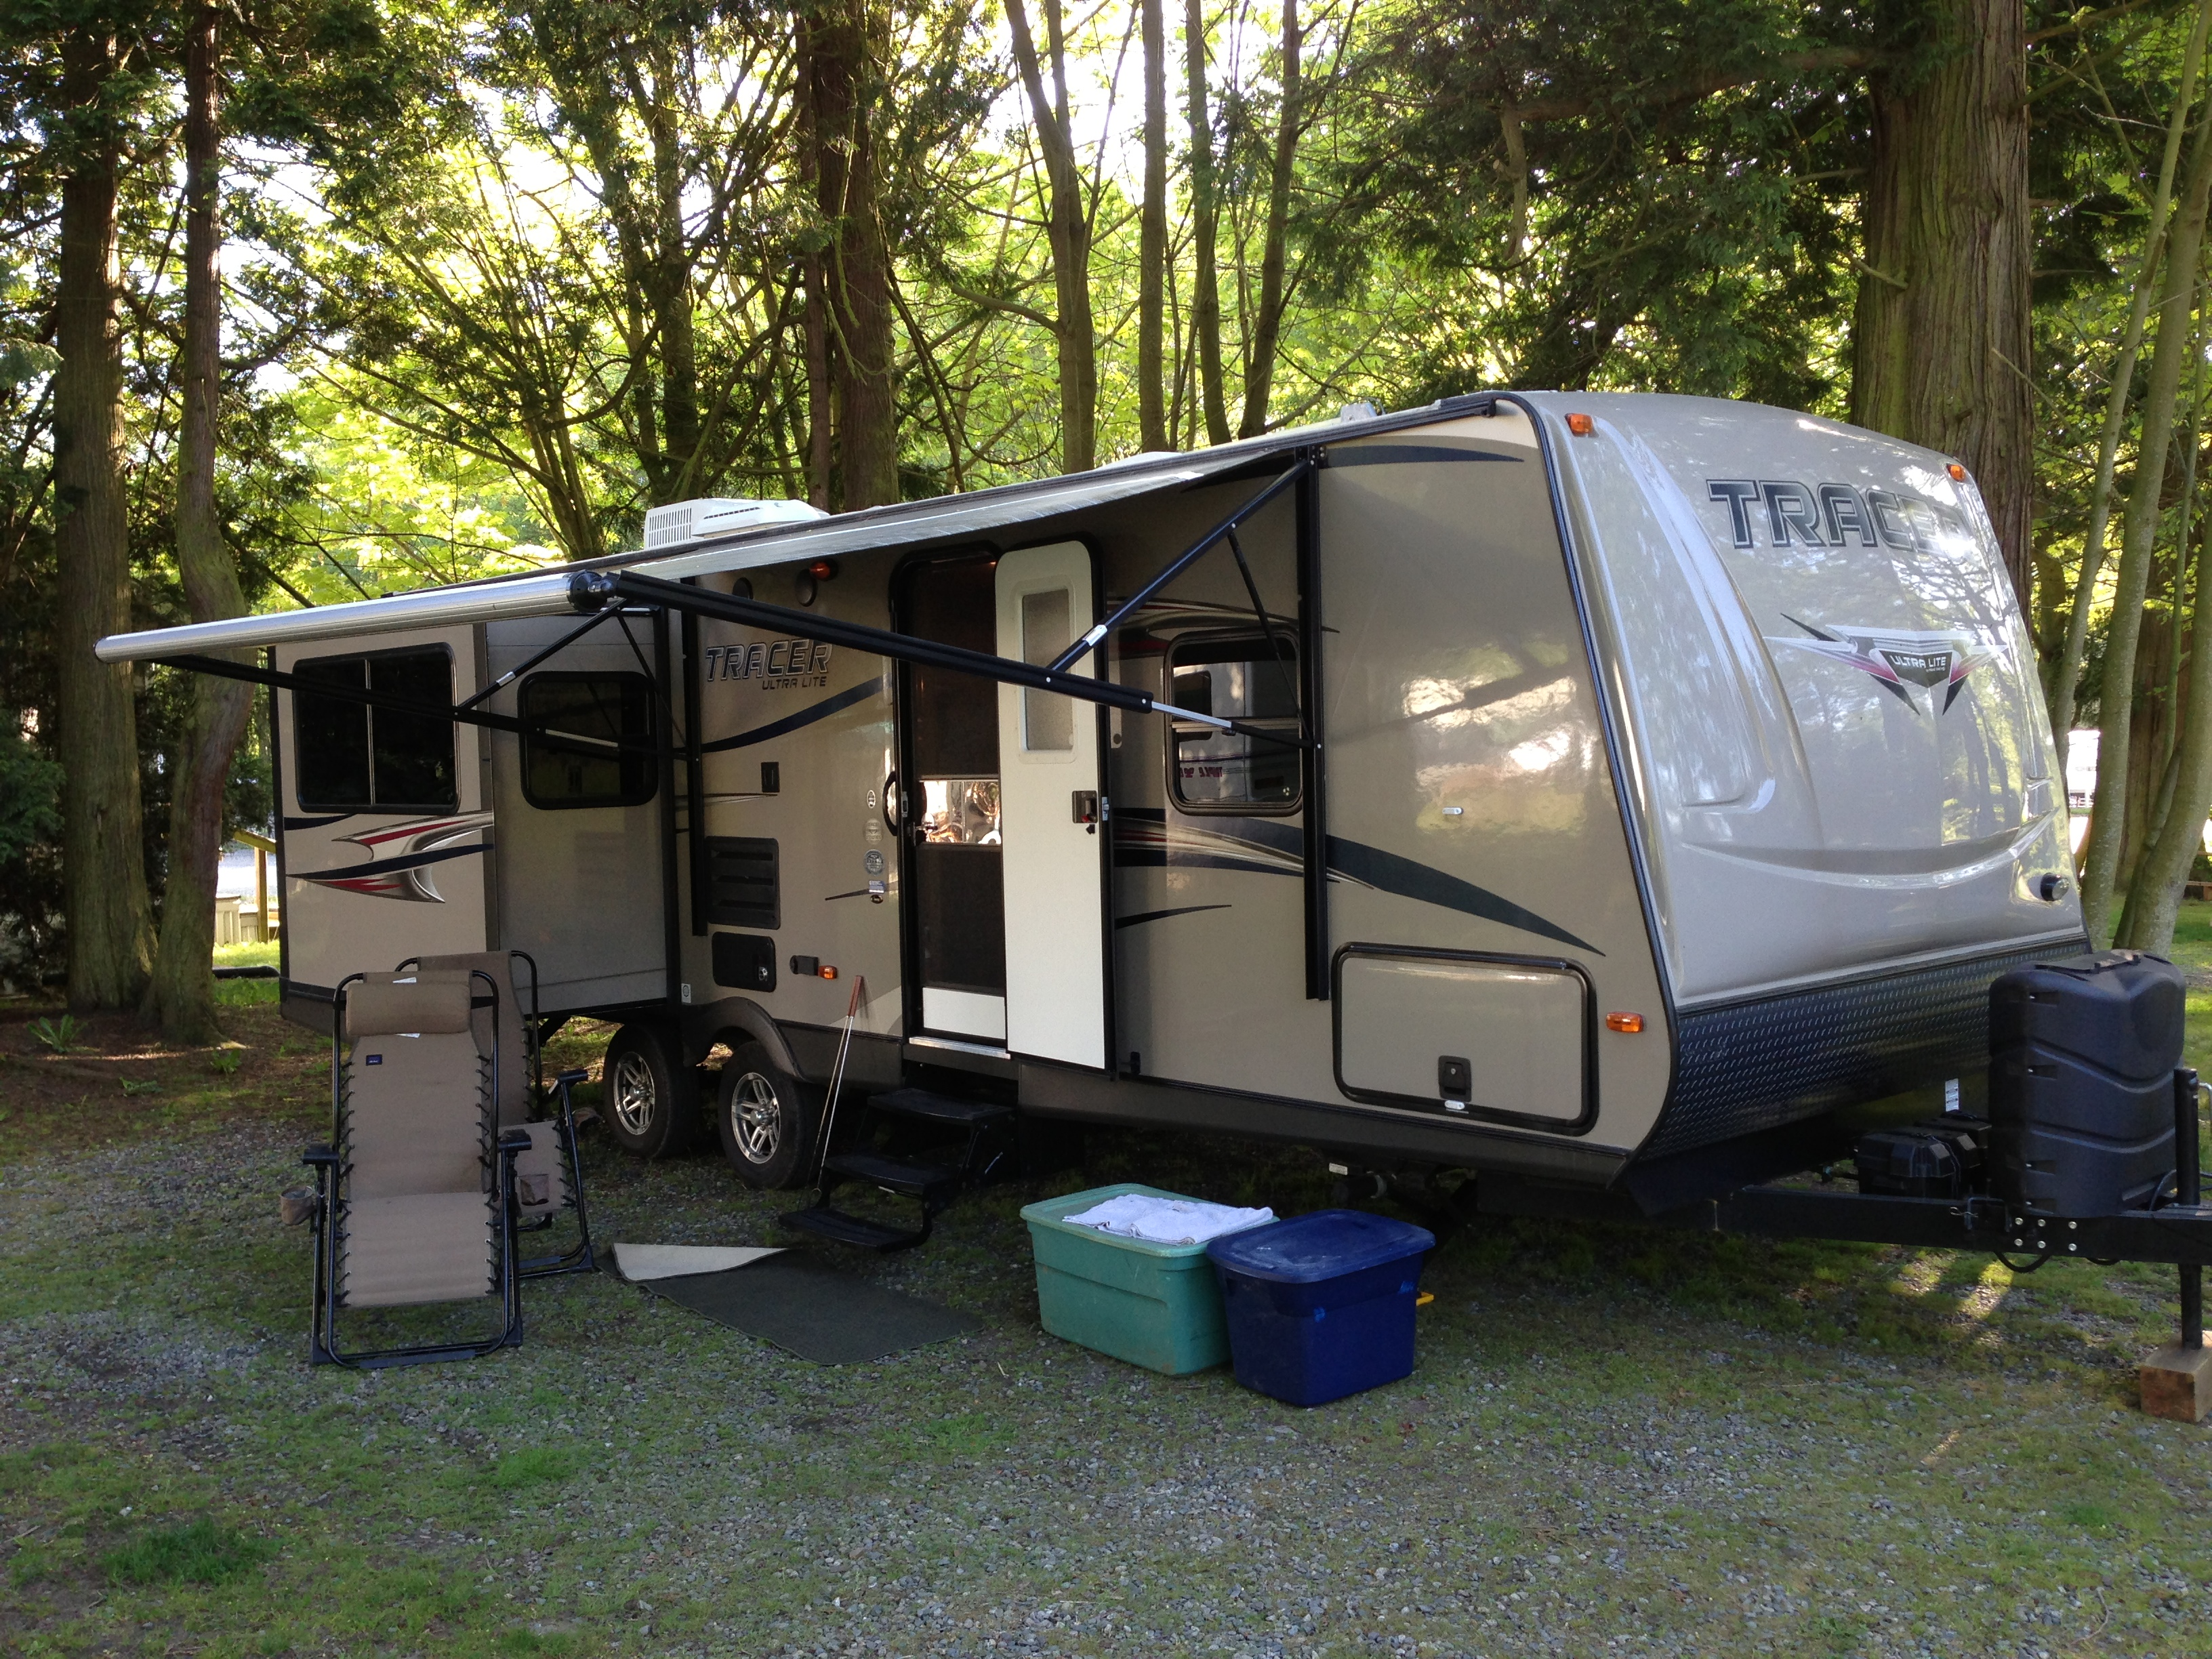 Forest River Tracer 2700RES Executive Series 2013